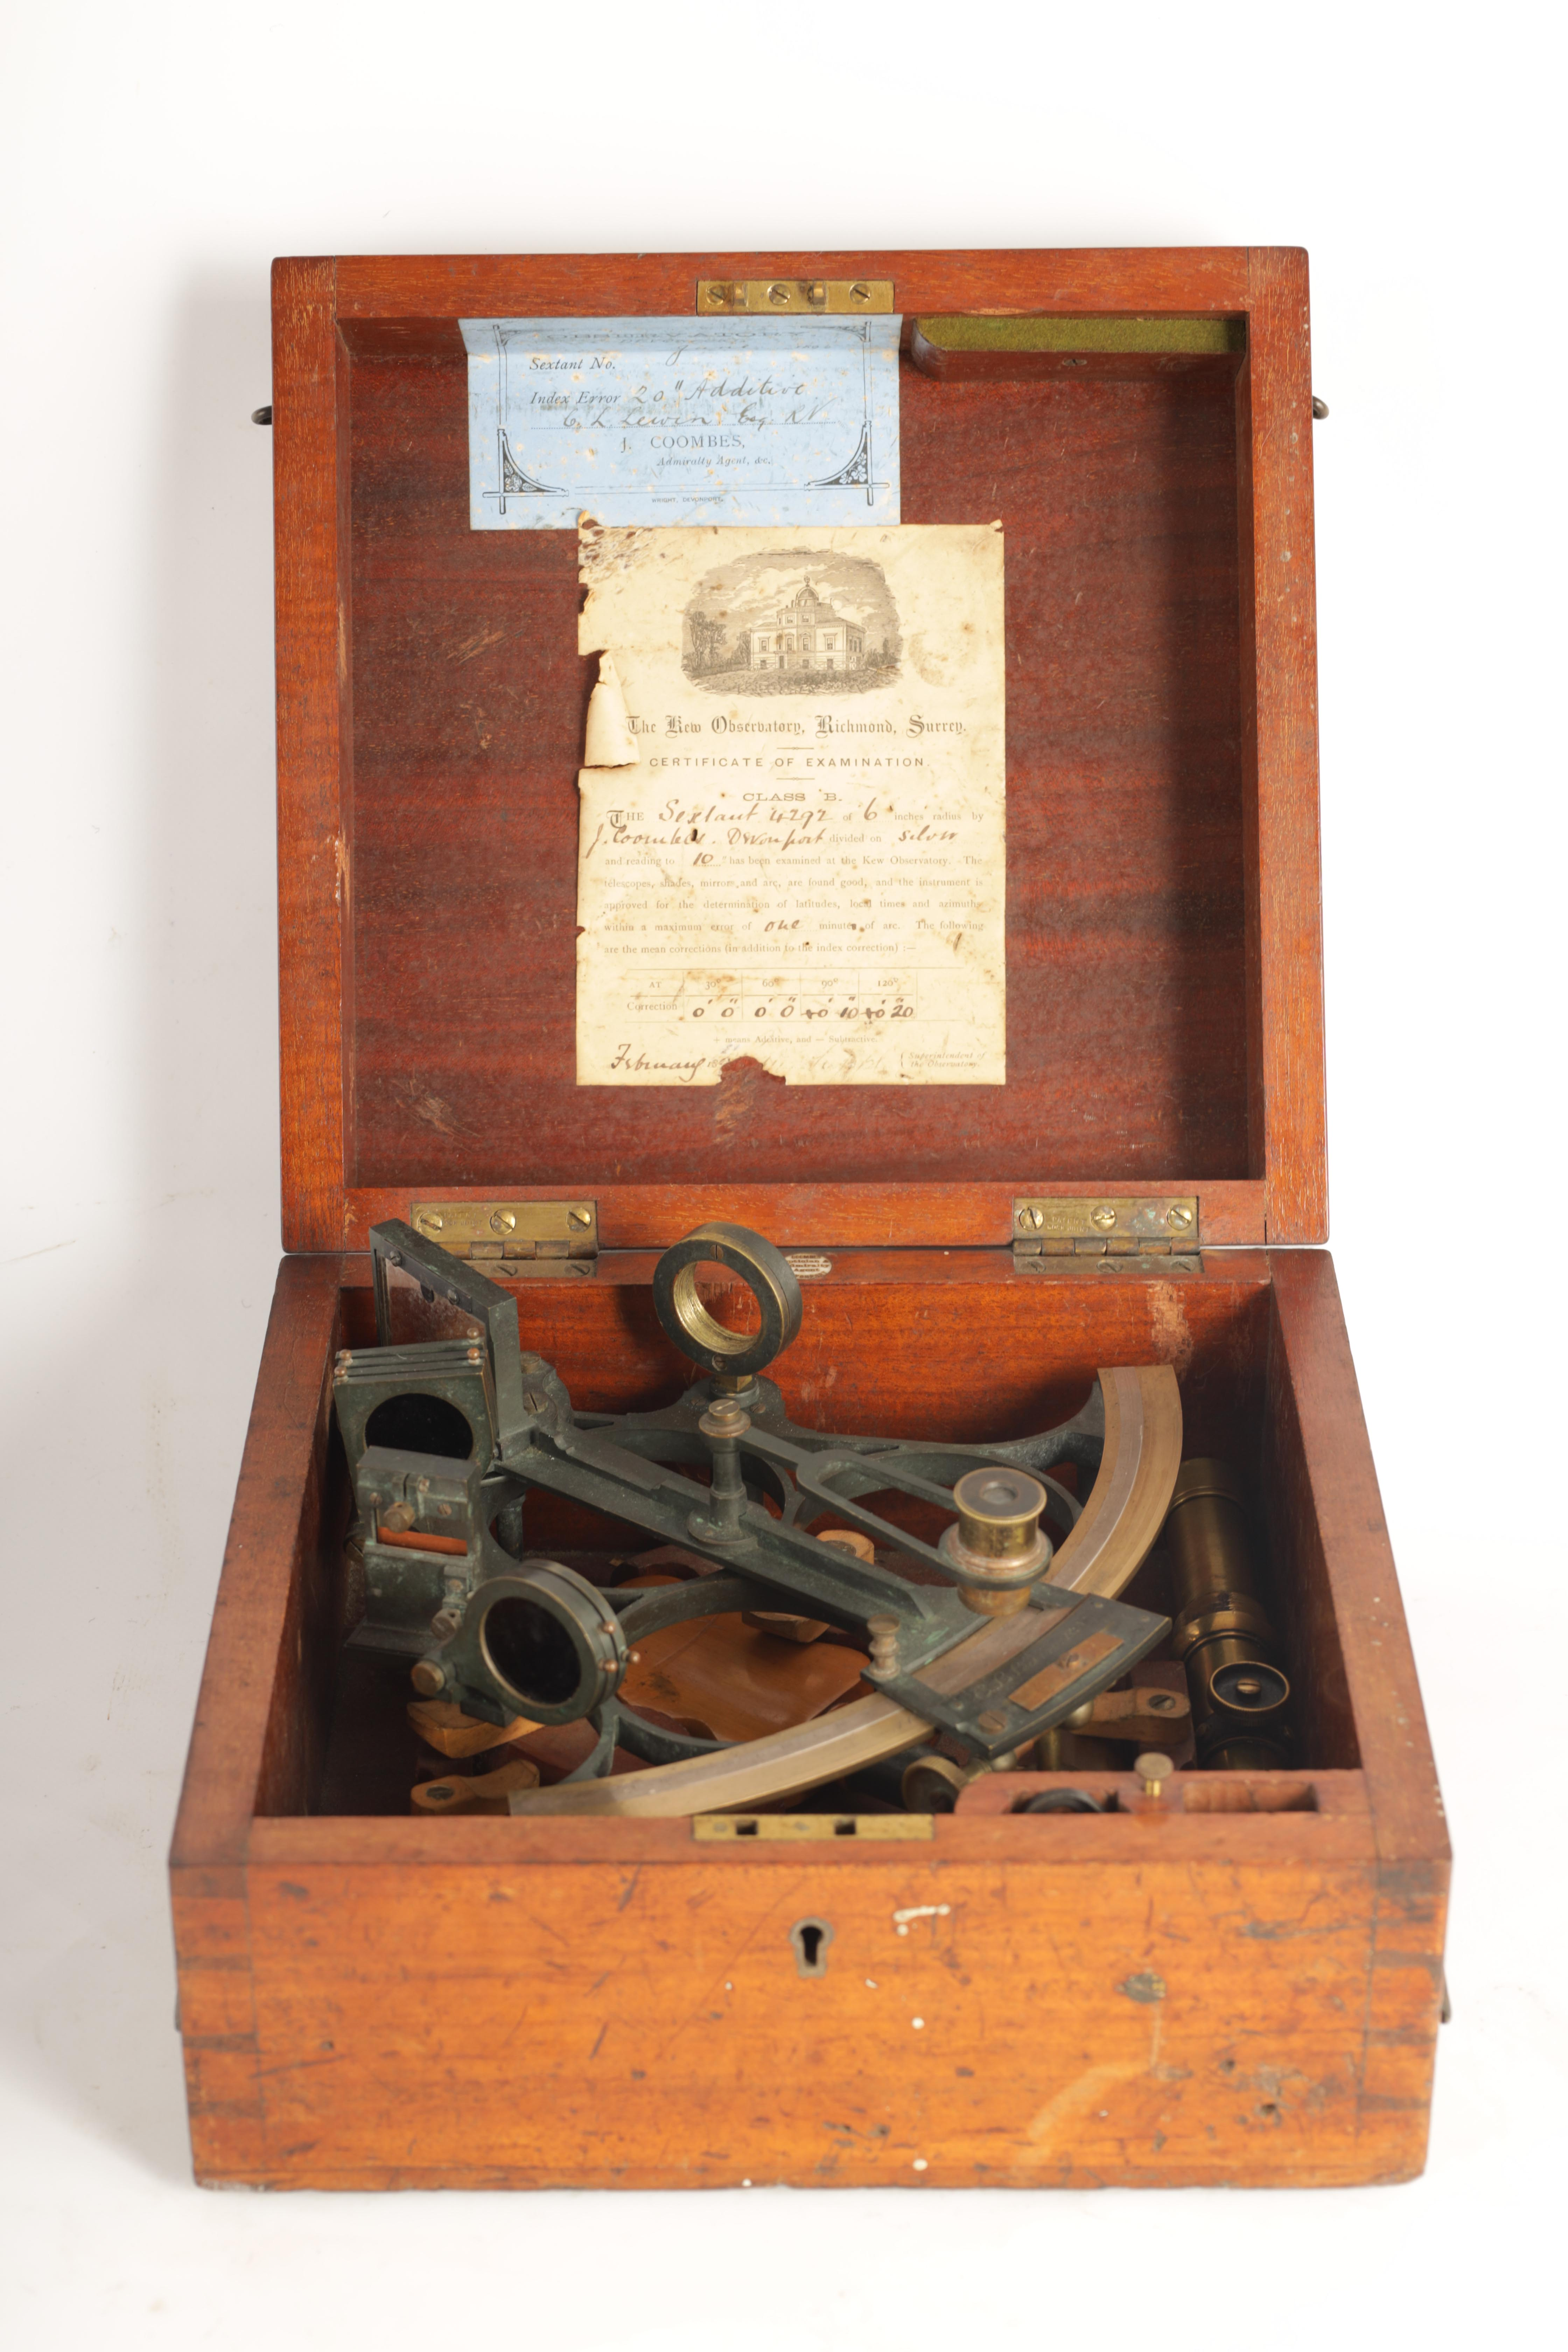 J. COOMBES, OPTICIAN & ADMIRALTY AGENT, DEVONPORT. A LATE 19TH CENTURY BRASS FRAMED SEXTANT IN - Image 11 of 17